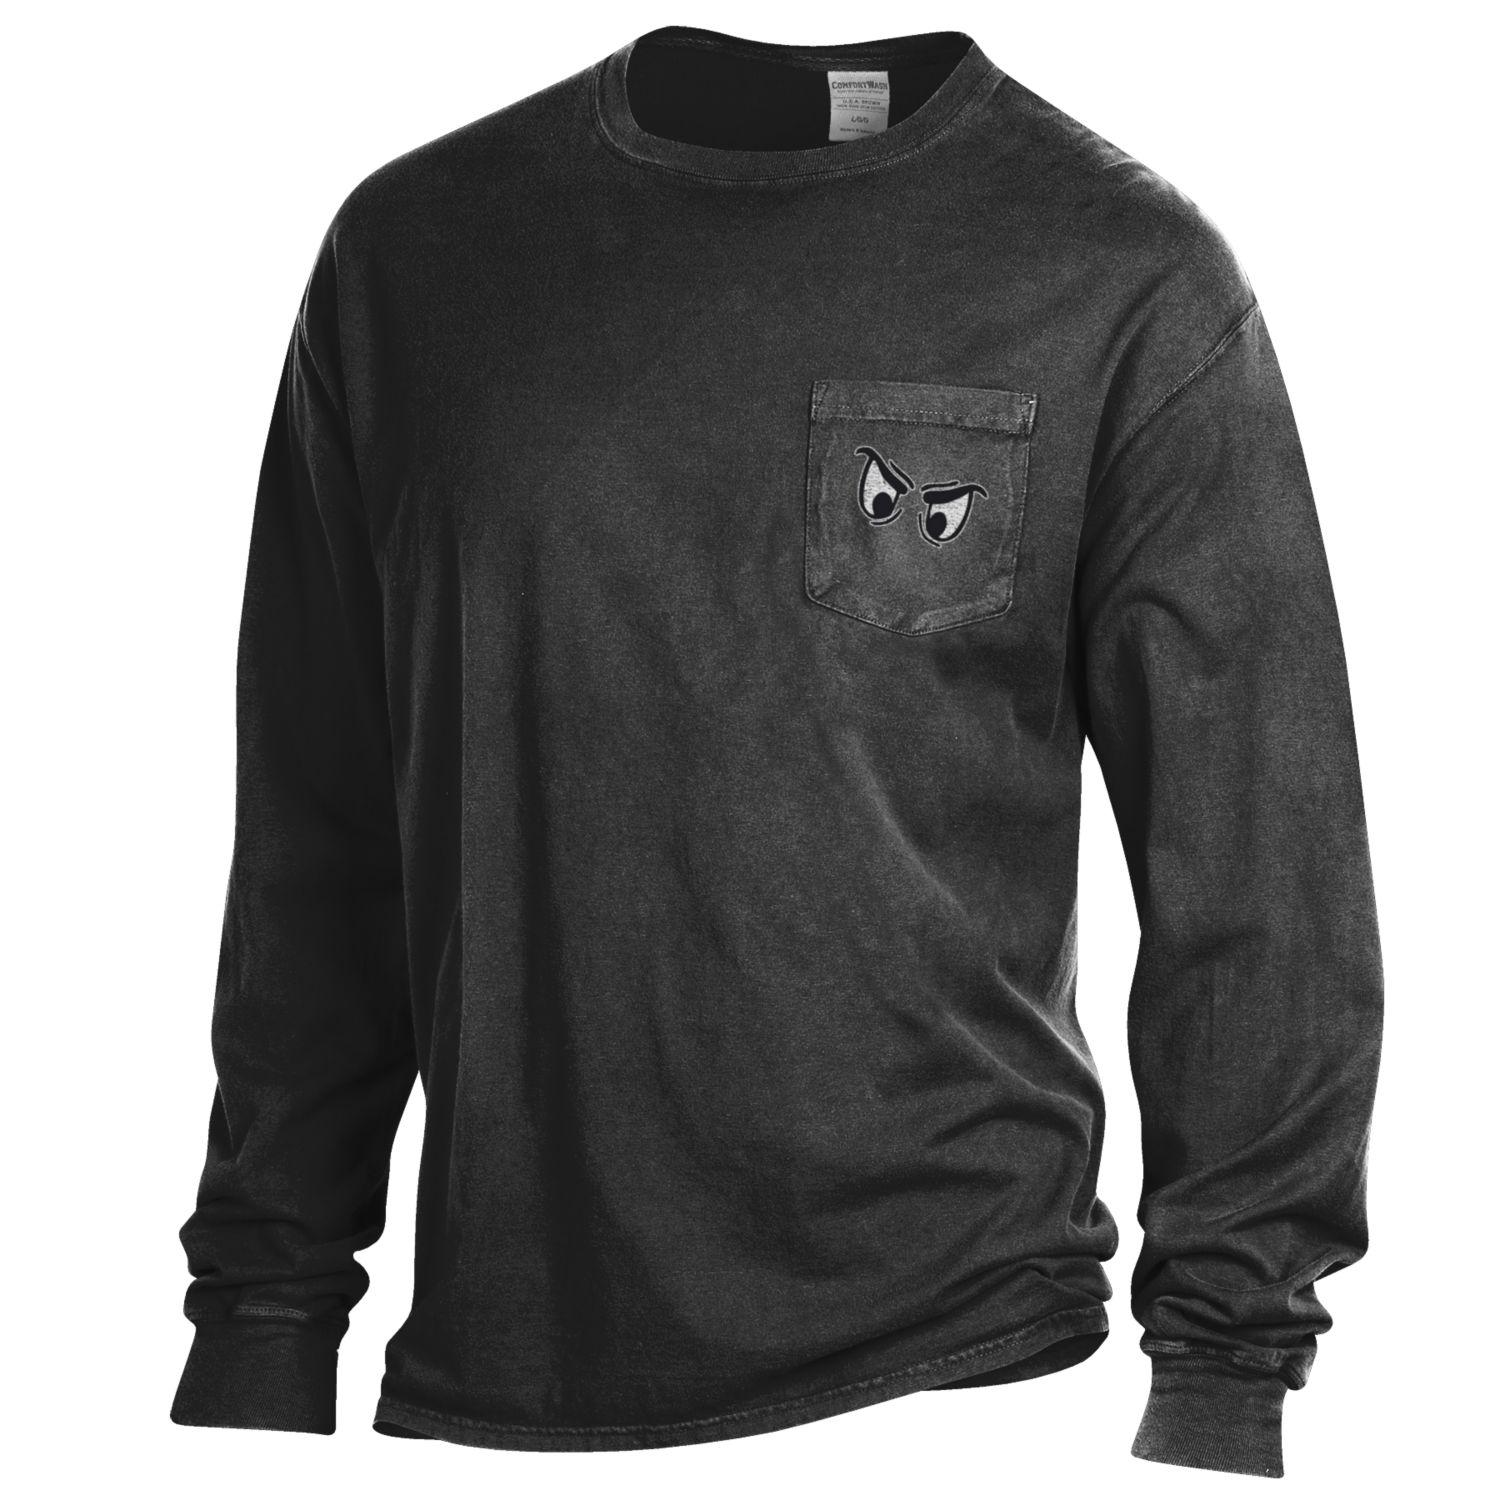 Phantoms Garment Dyed Long Sleeve Pocket Tee - Black